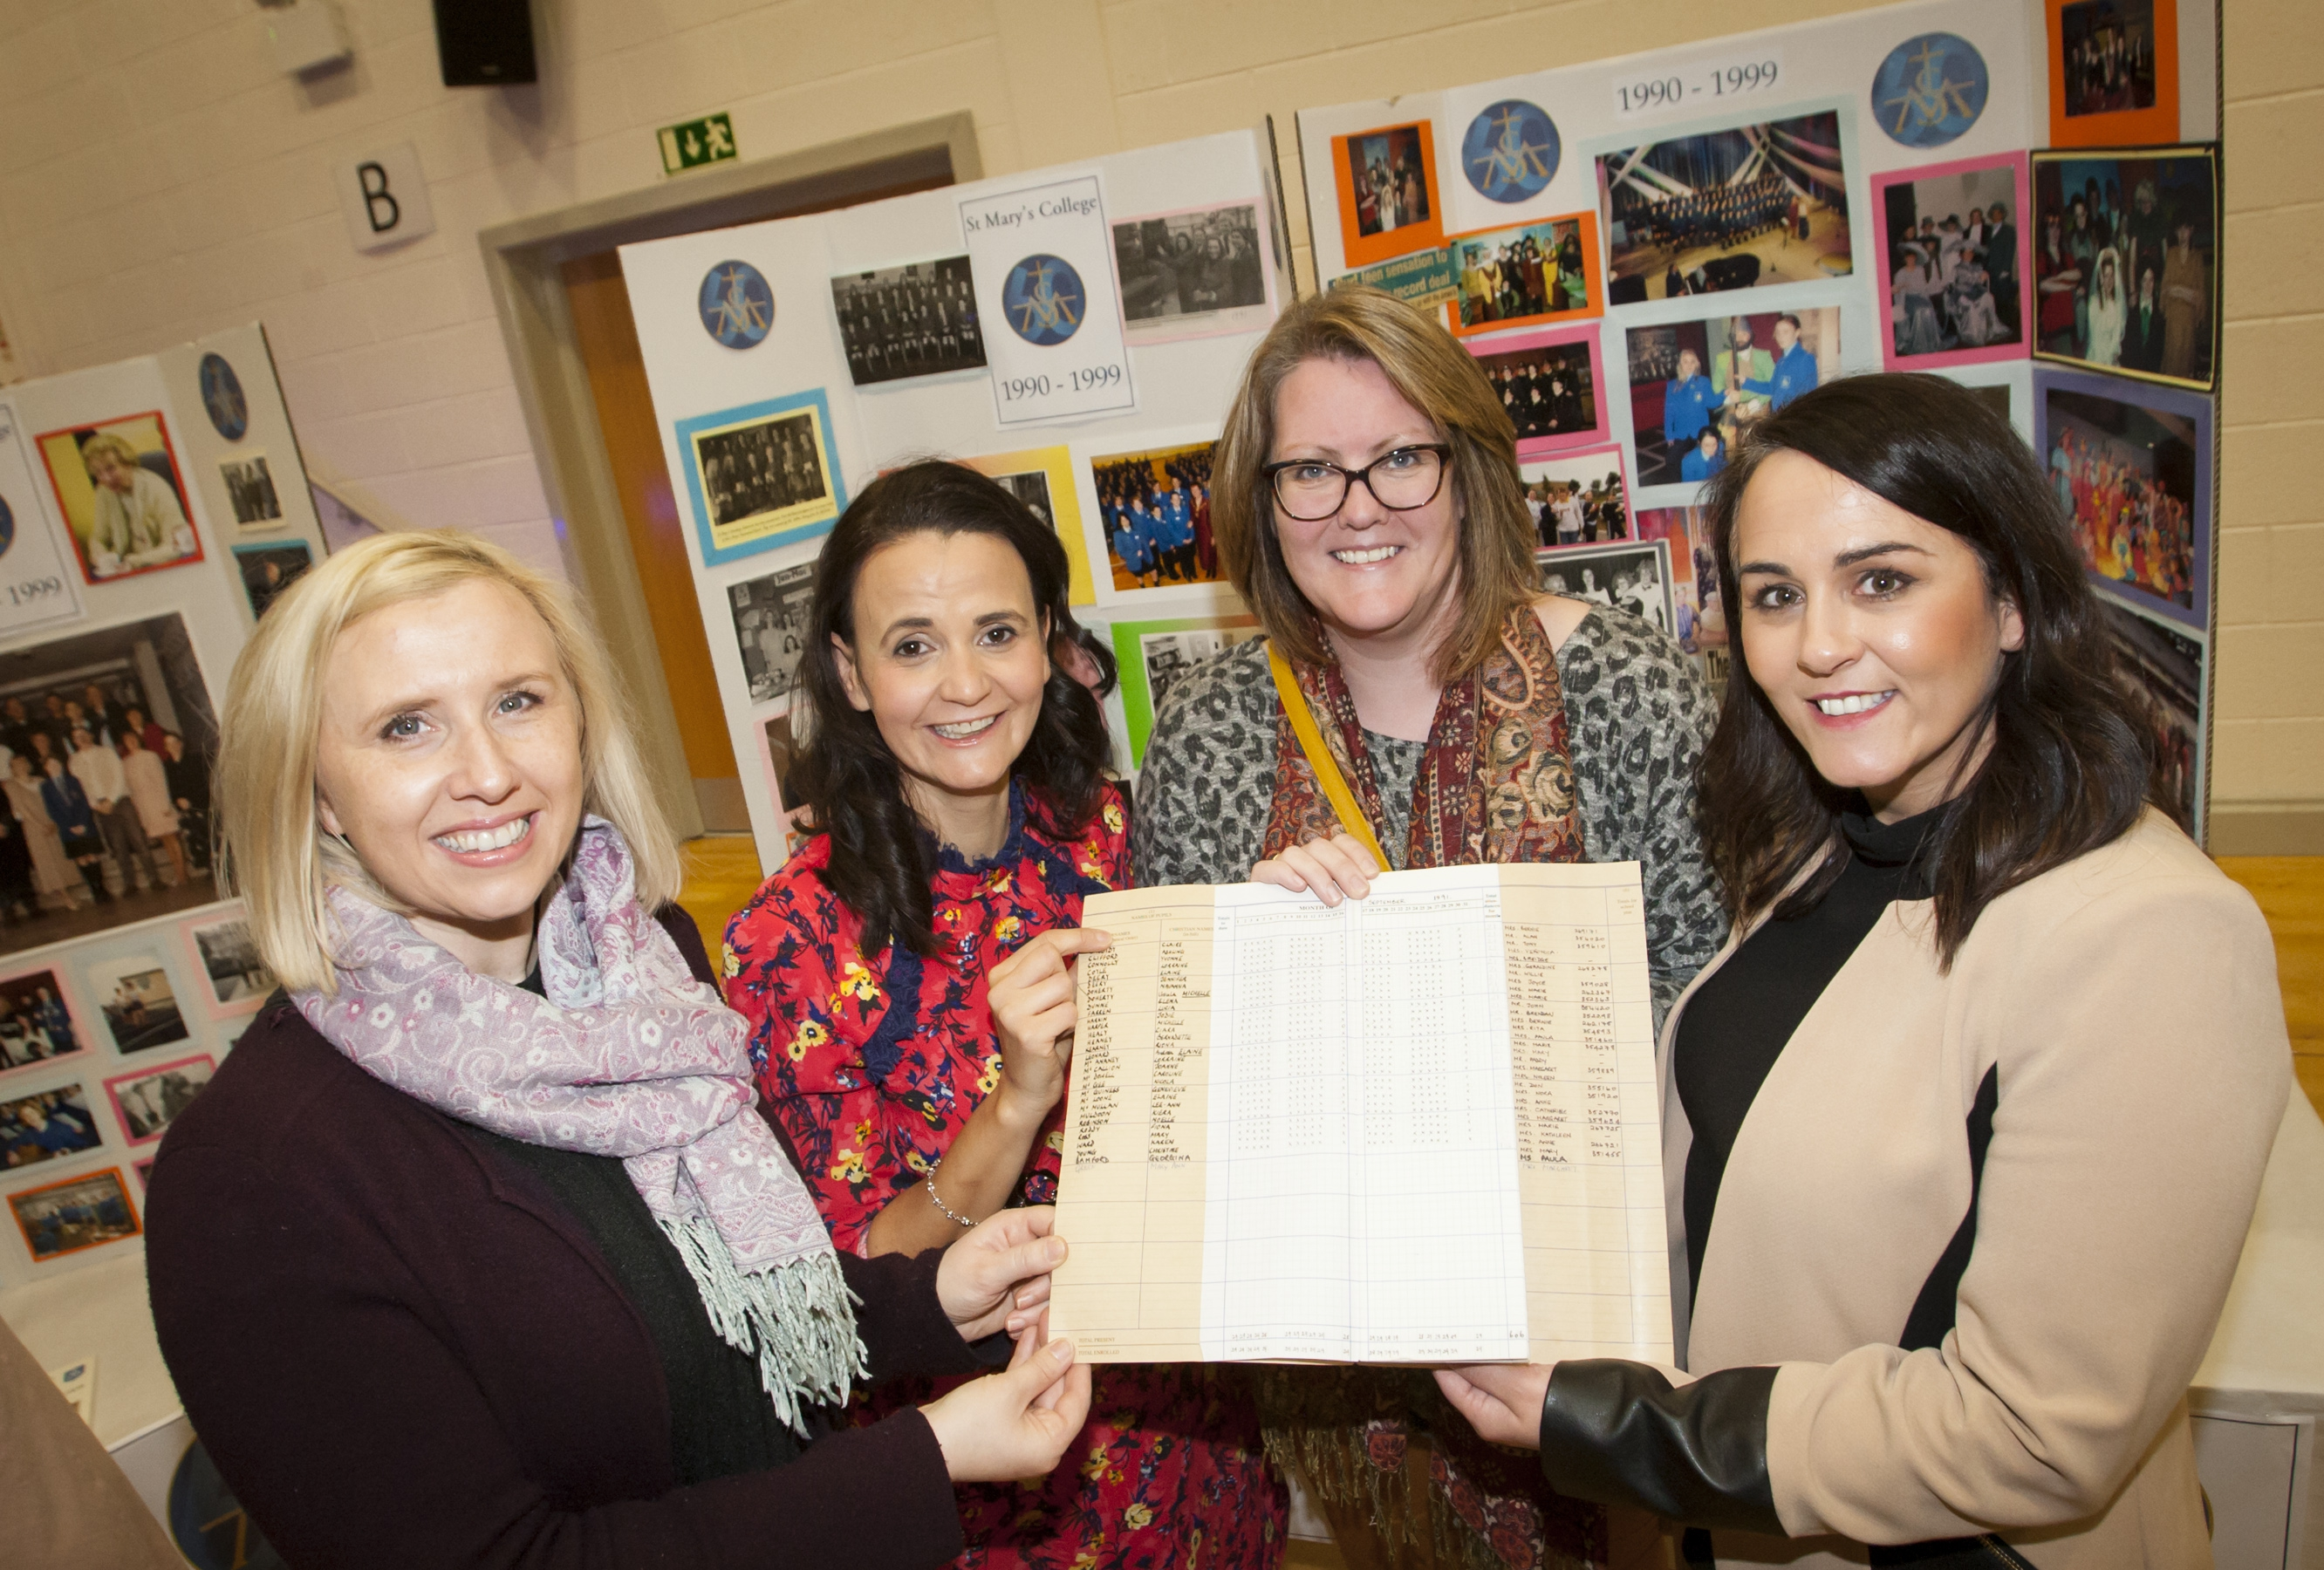 Class of '98 at St. Mary's College - Terri Lamberton, Noelle Robinson, Navanna Doherty and Yvonne Connolly.